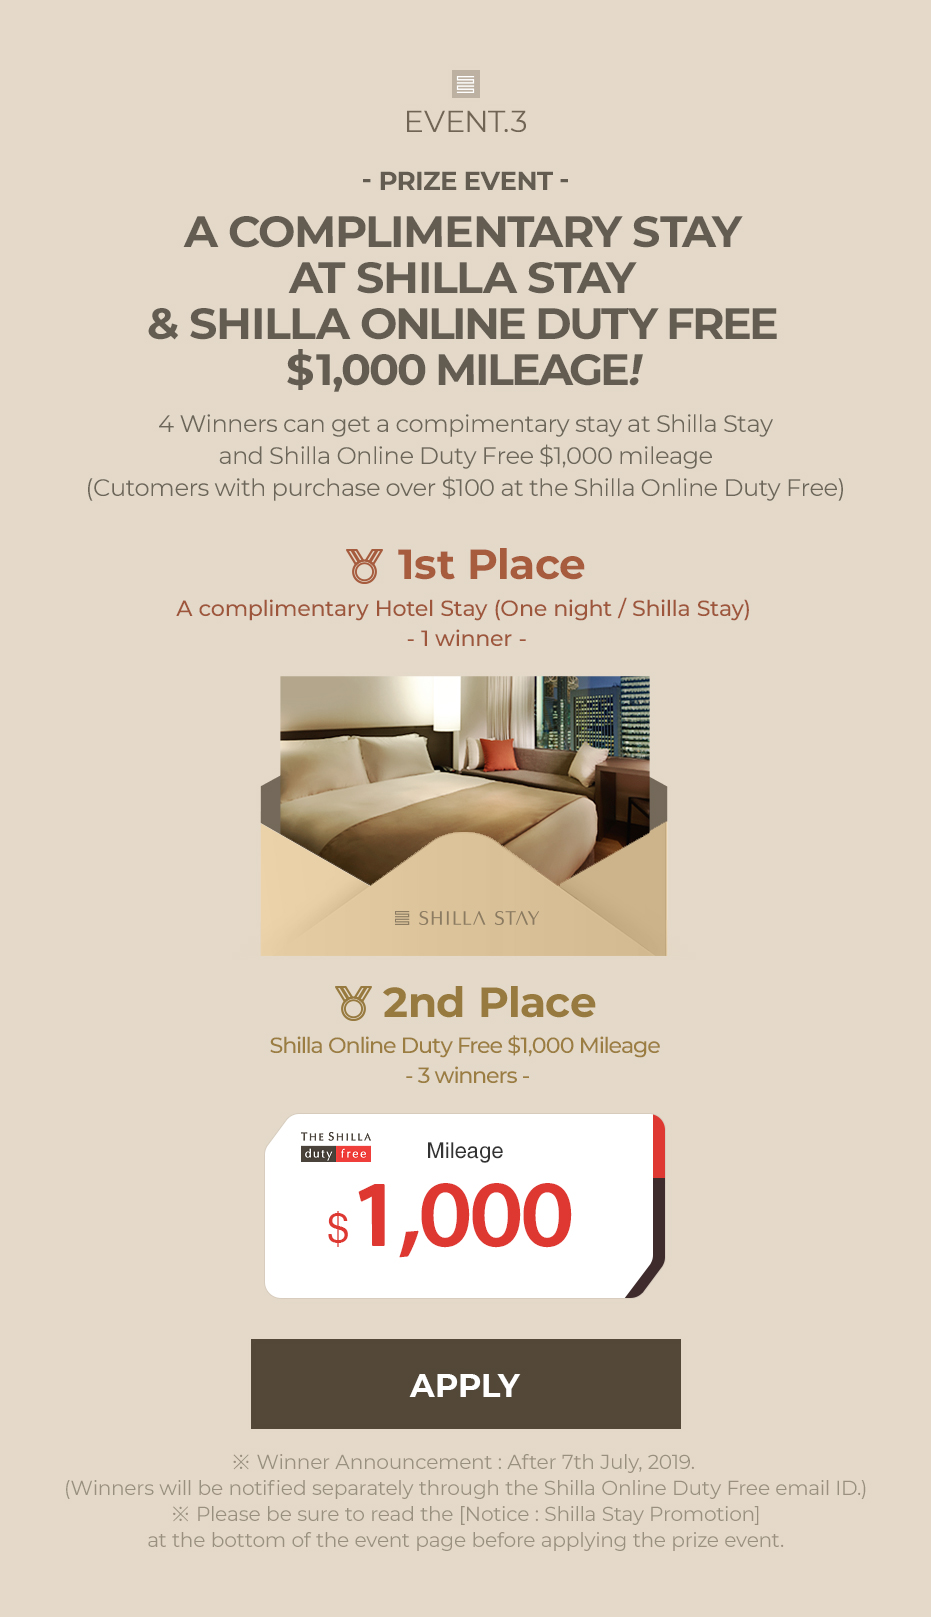 EVENT 3 A COMPLIMENTARY STAY AT SHILLA STAY & SHILLA ONLINE DUTY FREE $1,000 MILEAGE!